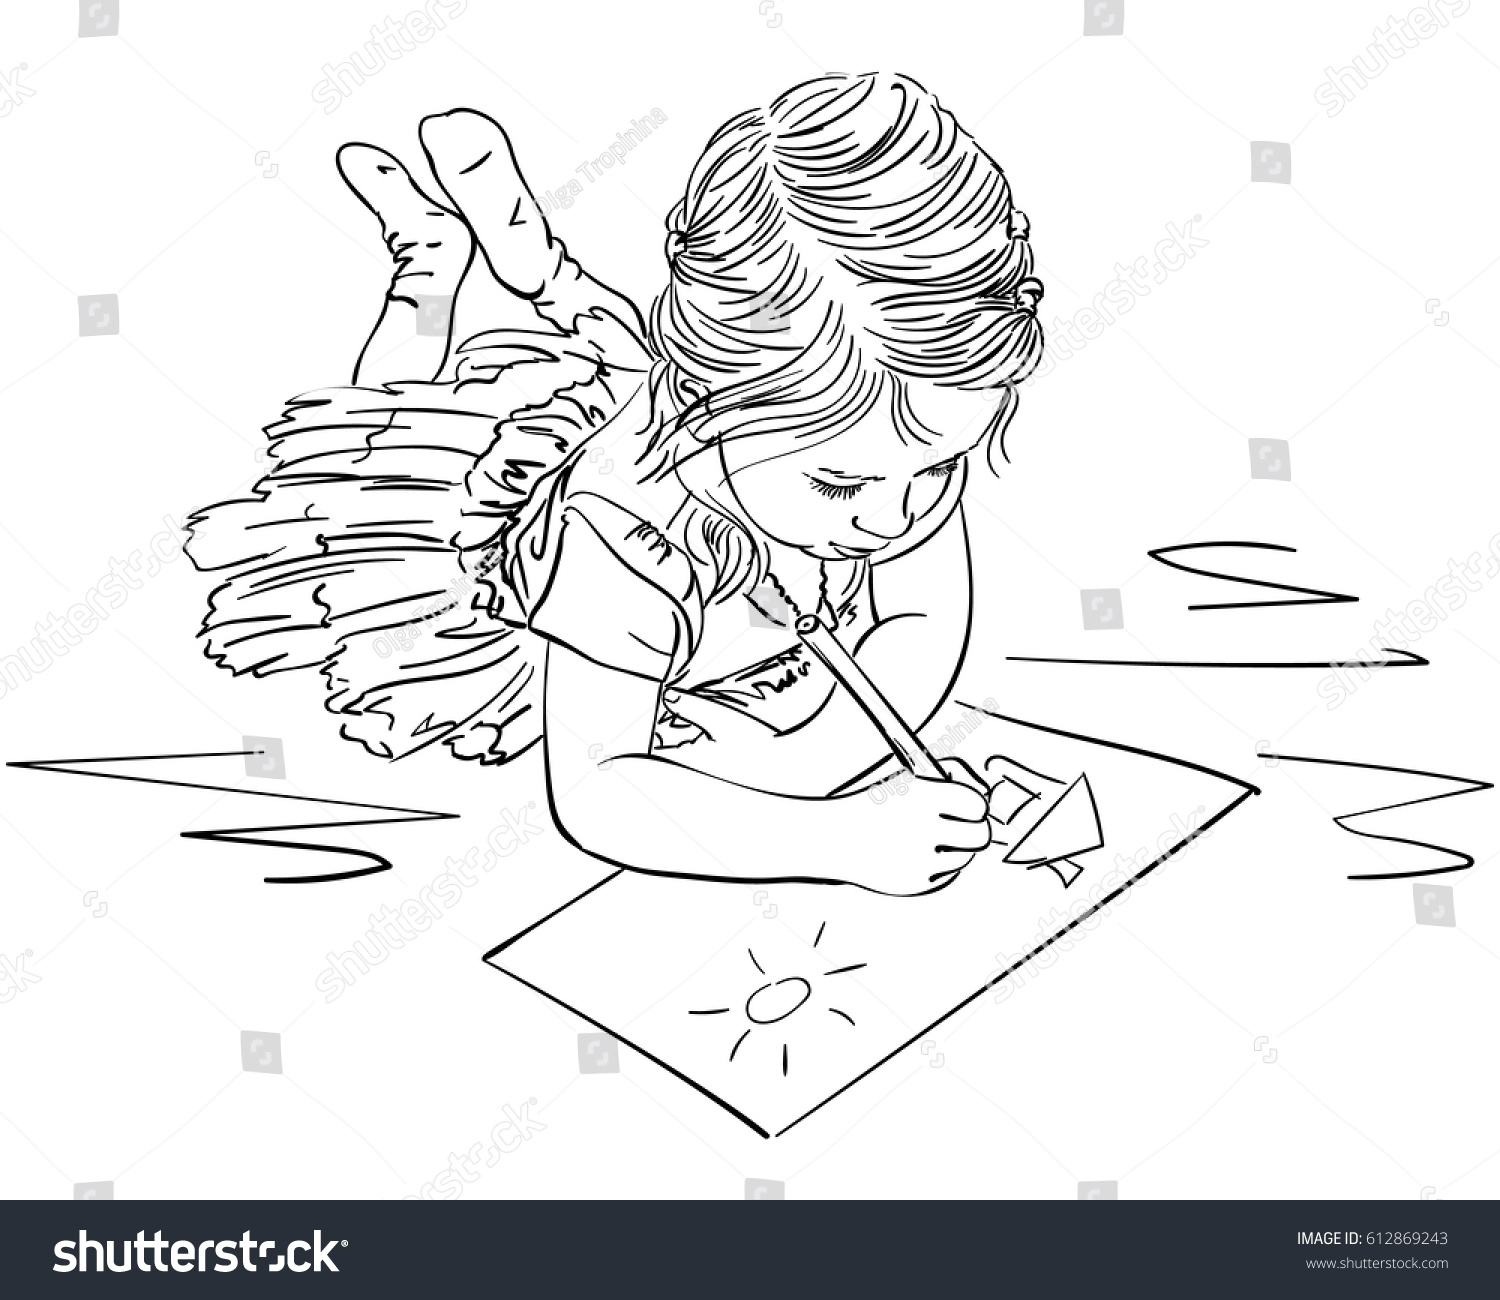 Line Drawing Newspaper : Child drawing house sun on paper stock vector